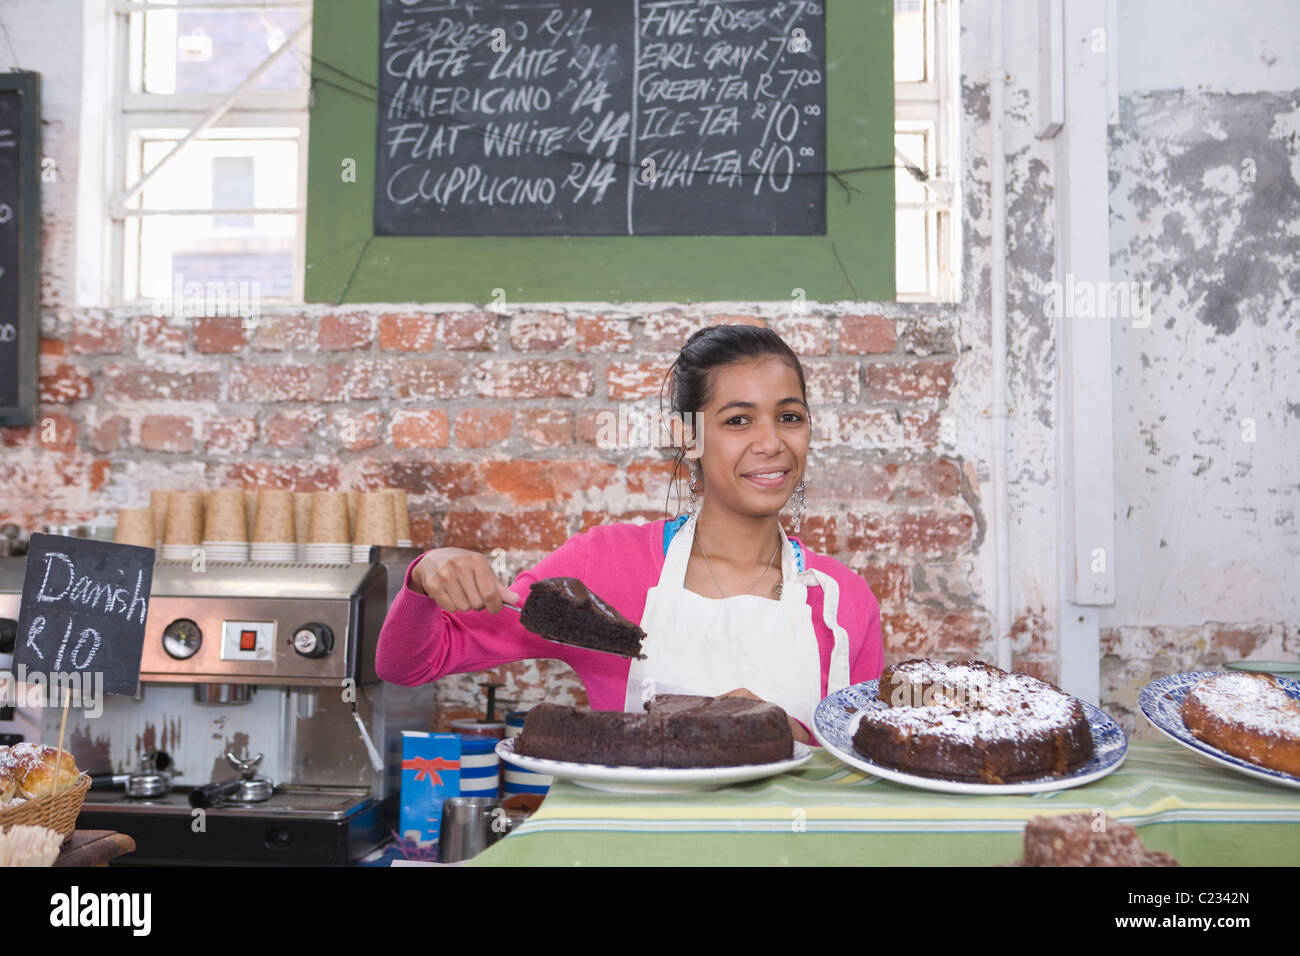 Catering assistant in service area of canteen - Stock Image